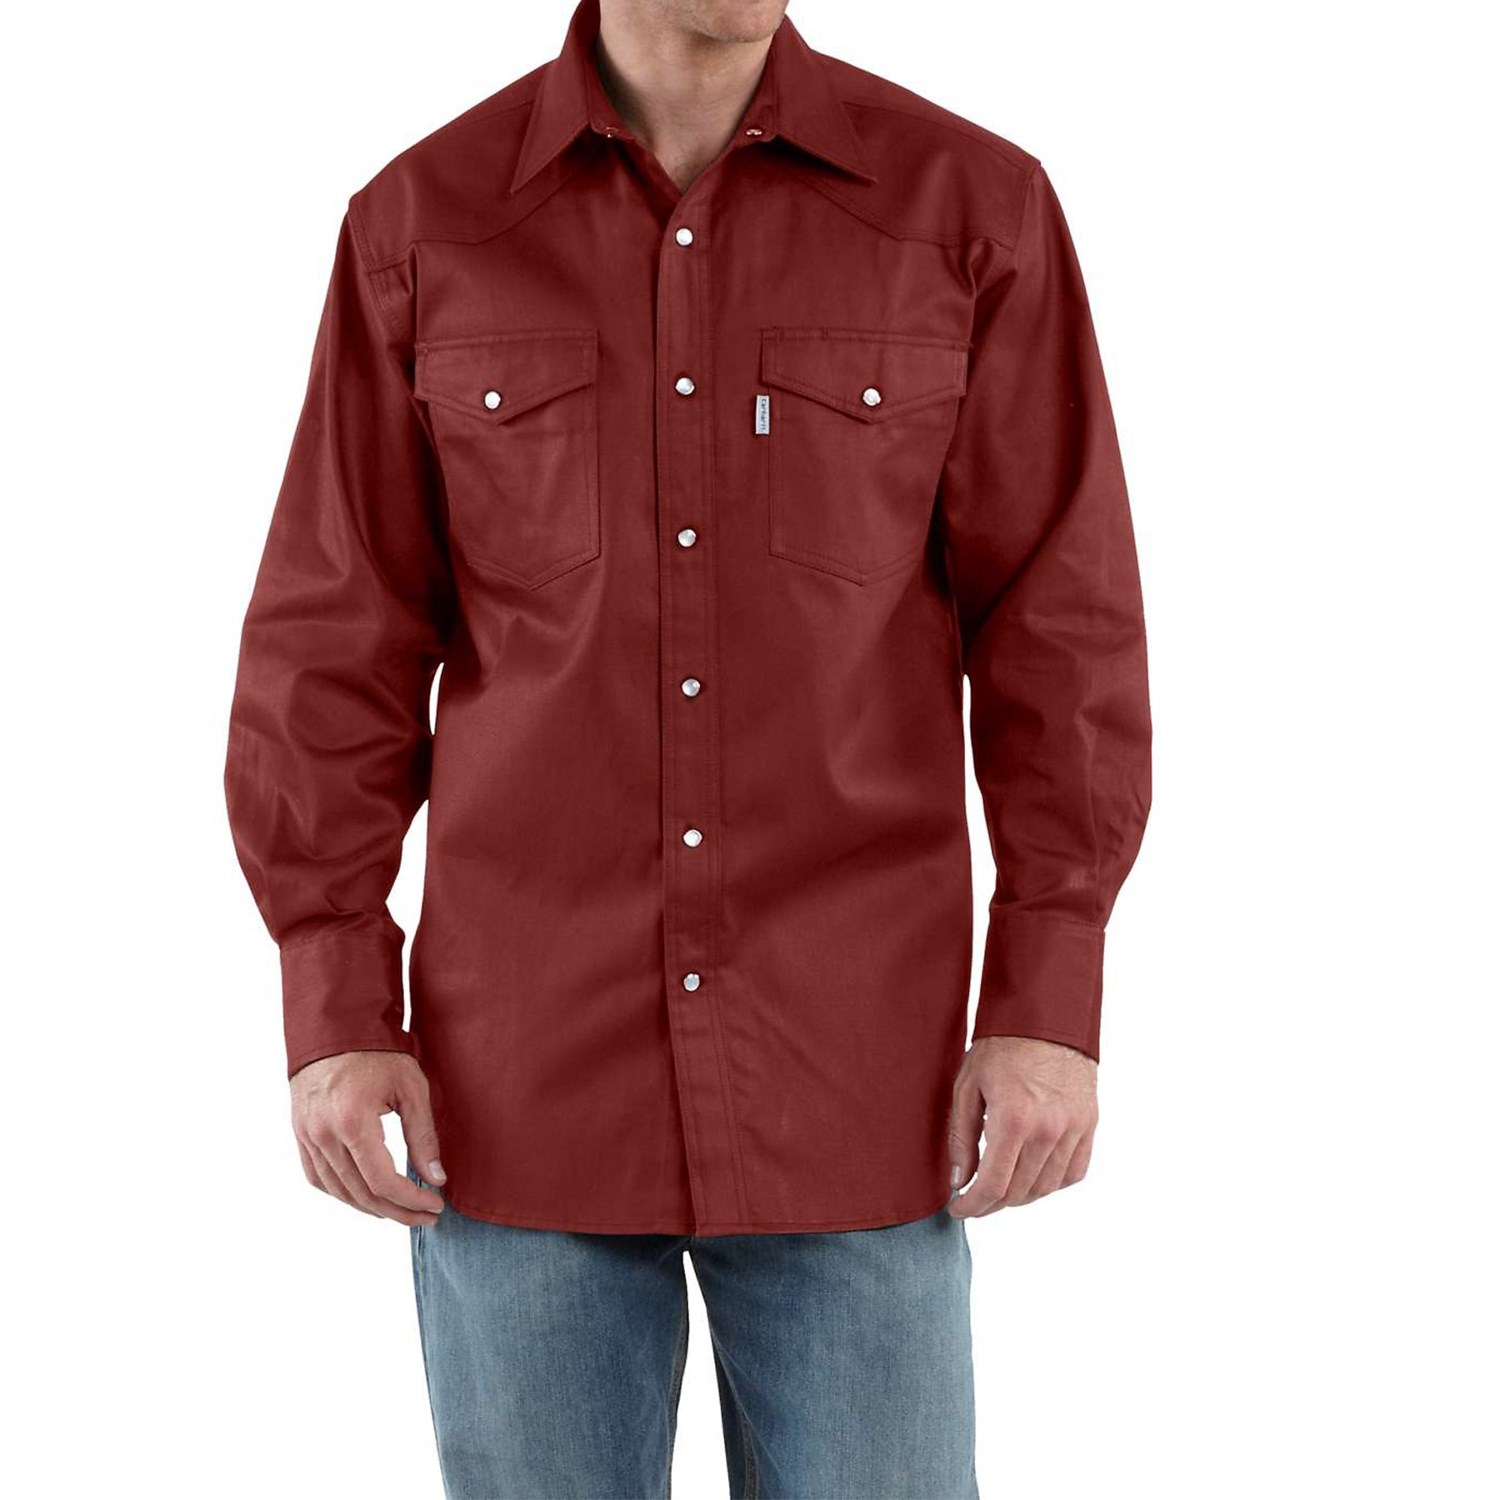 Carhartt snap front twill work shirt for tall men for Tall mens work shirts